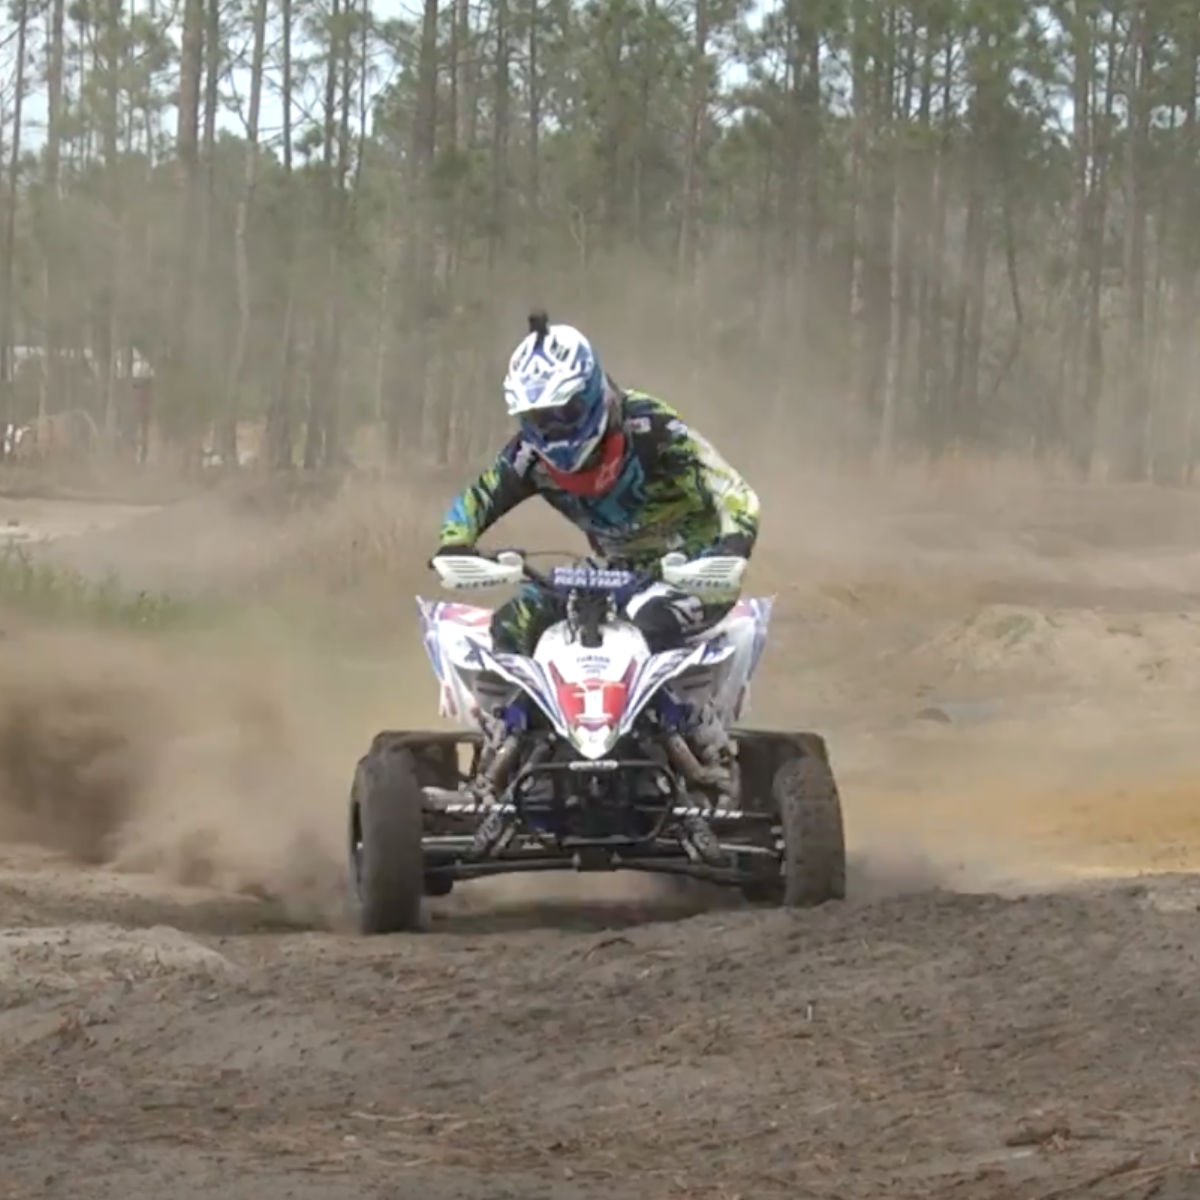 ATV riding in dirt